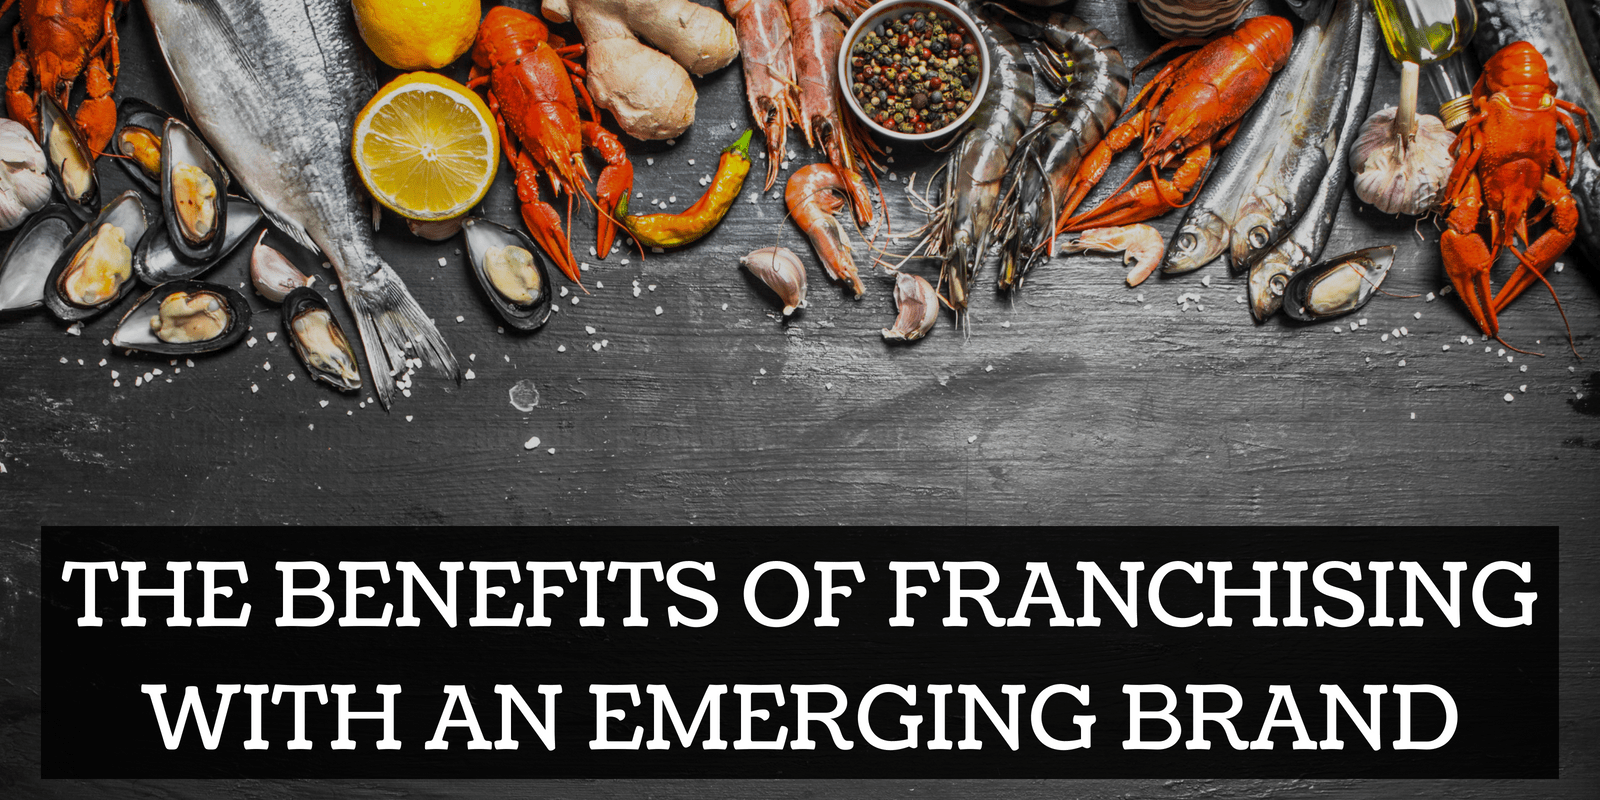 The Benefits of Franchising with an Emerging Brand